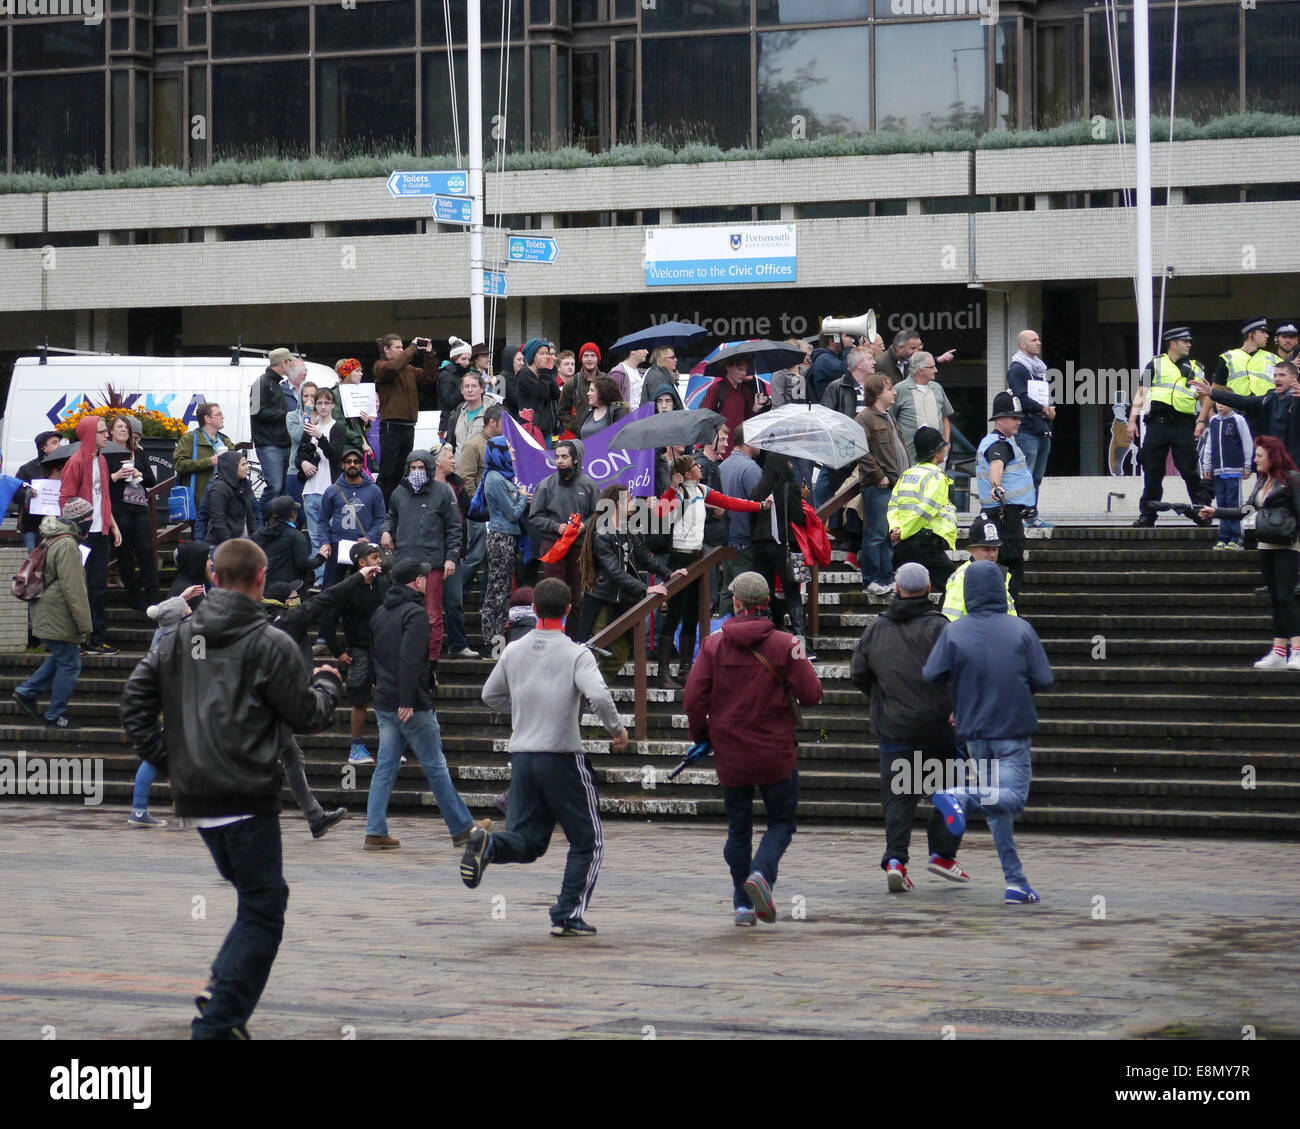 Members of the English Defence League break away from the Police in the centre of the Guildhall Square and Run towards - Stock Image